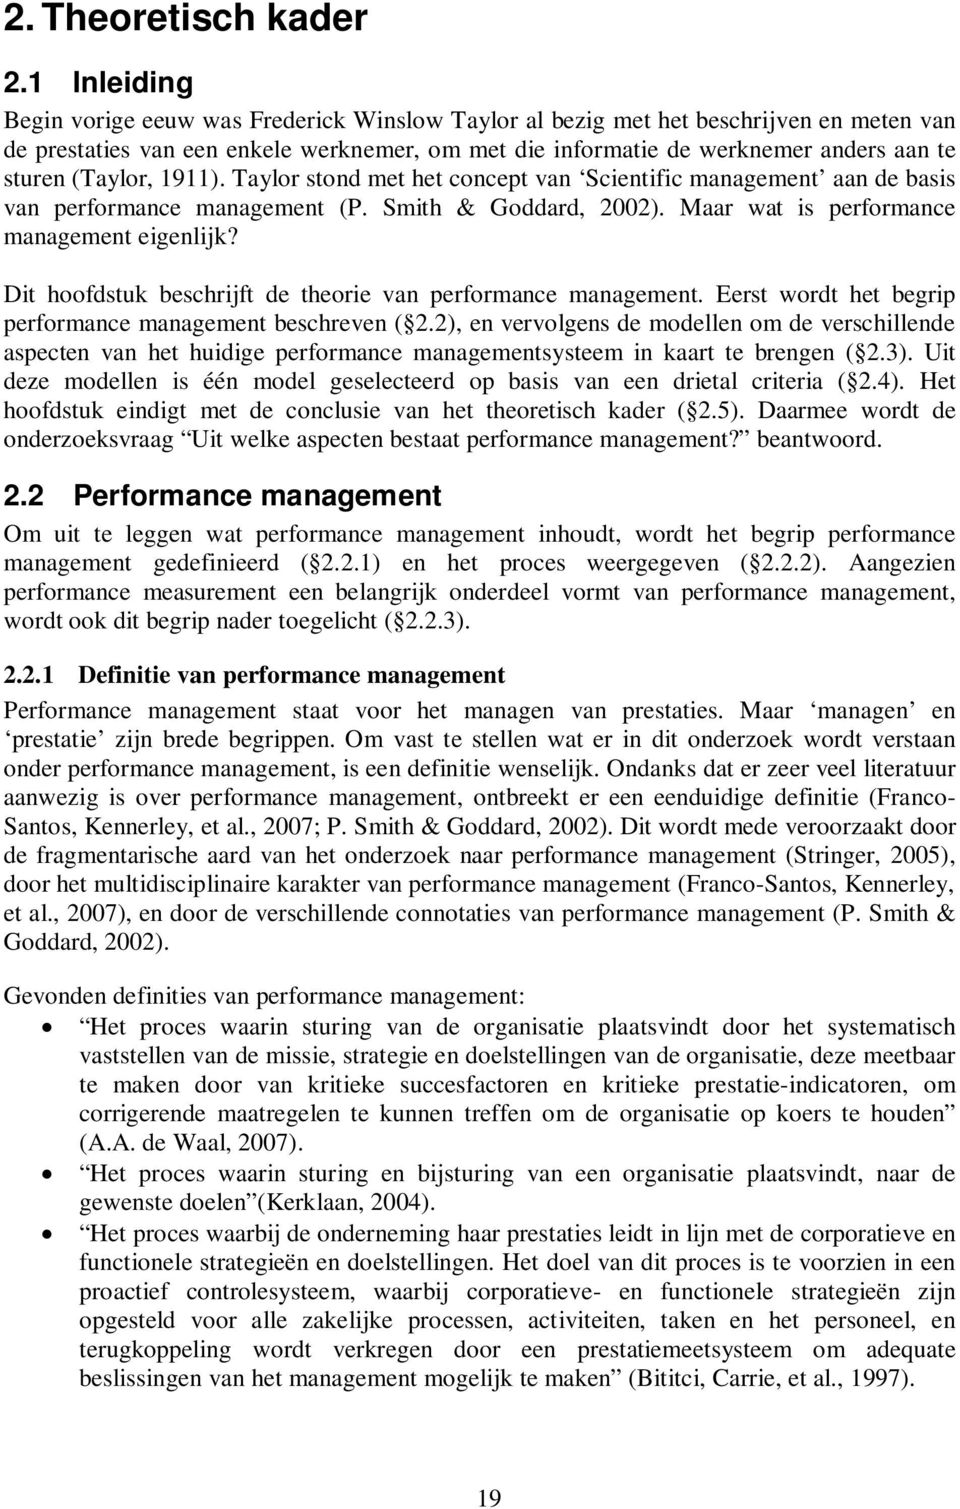 (Taylor, 1911). Taylor stond met het concept van Scientific management aan de basis van performance management (P. Smith & Goddard, 2002). Maar wat is performance management eigenlijk?